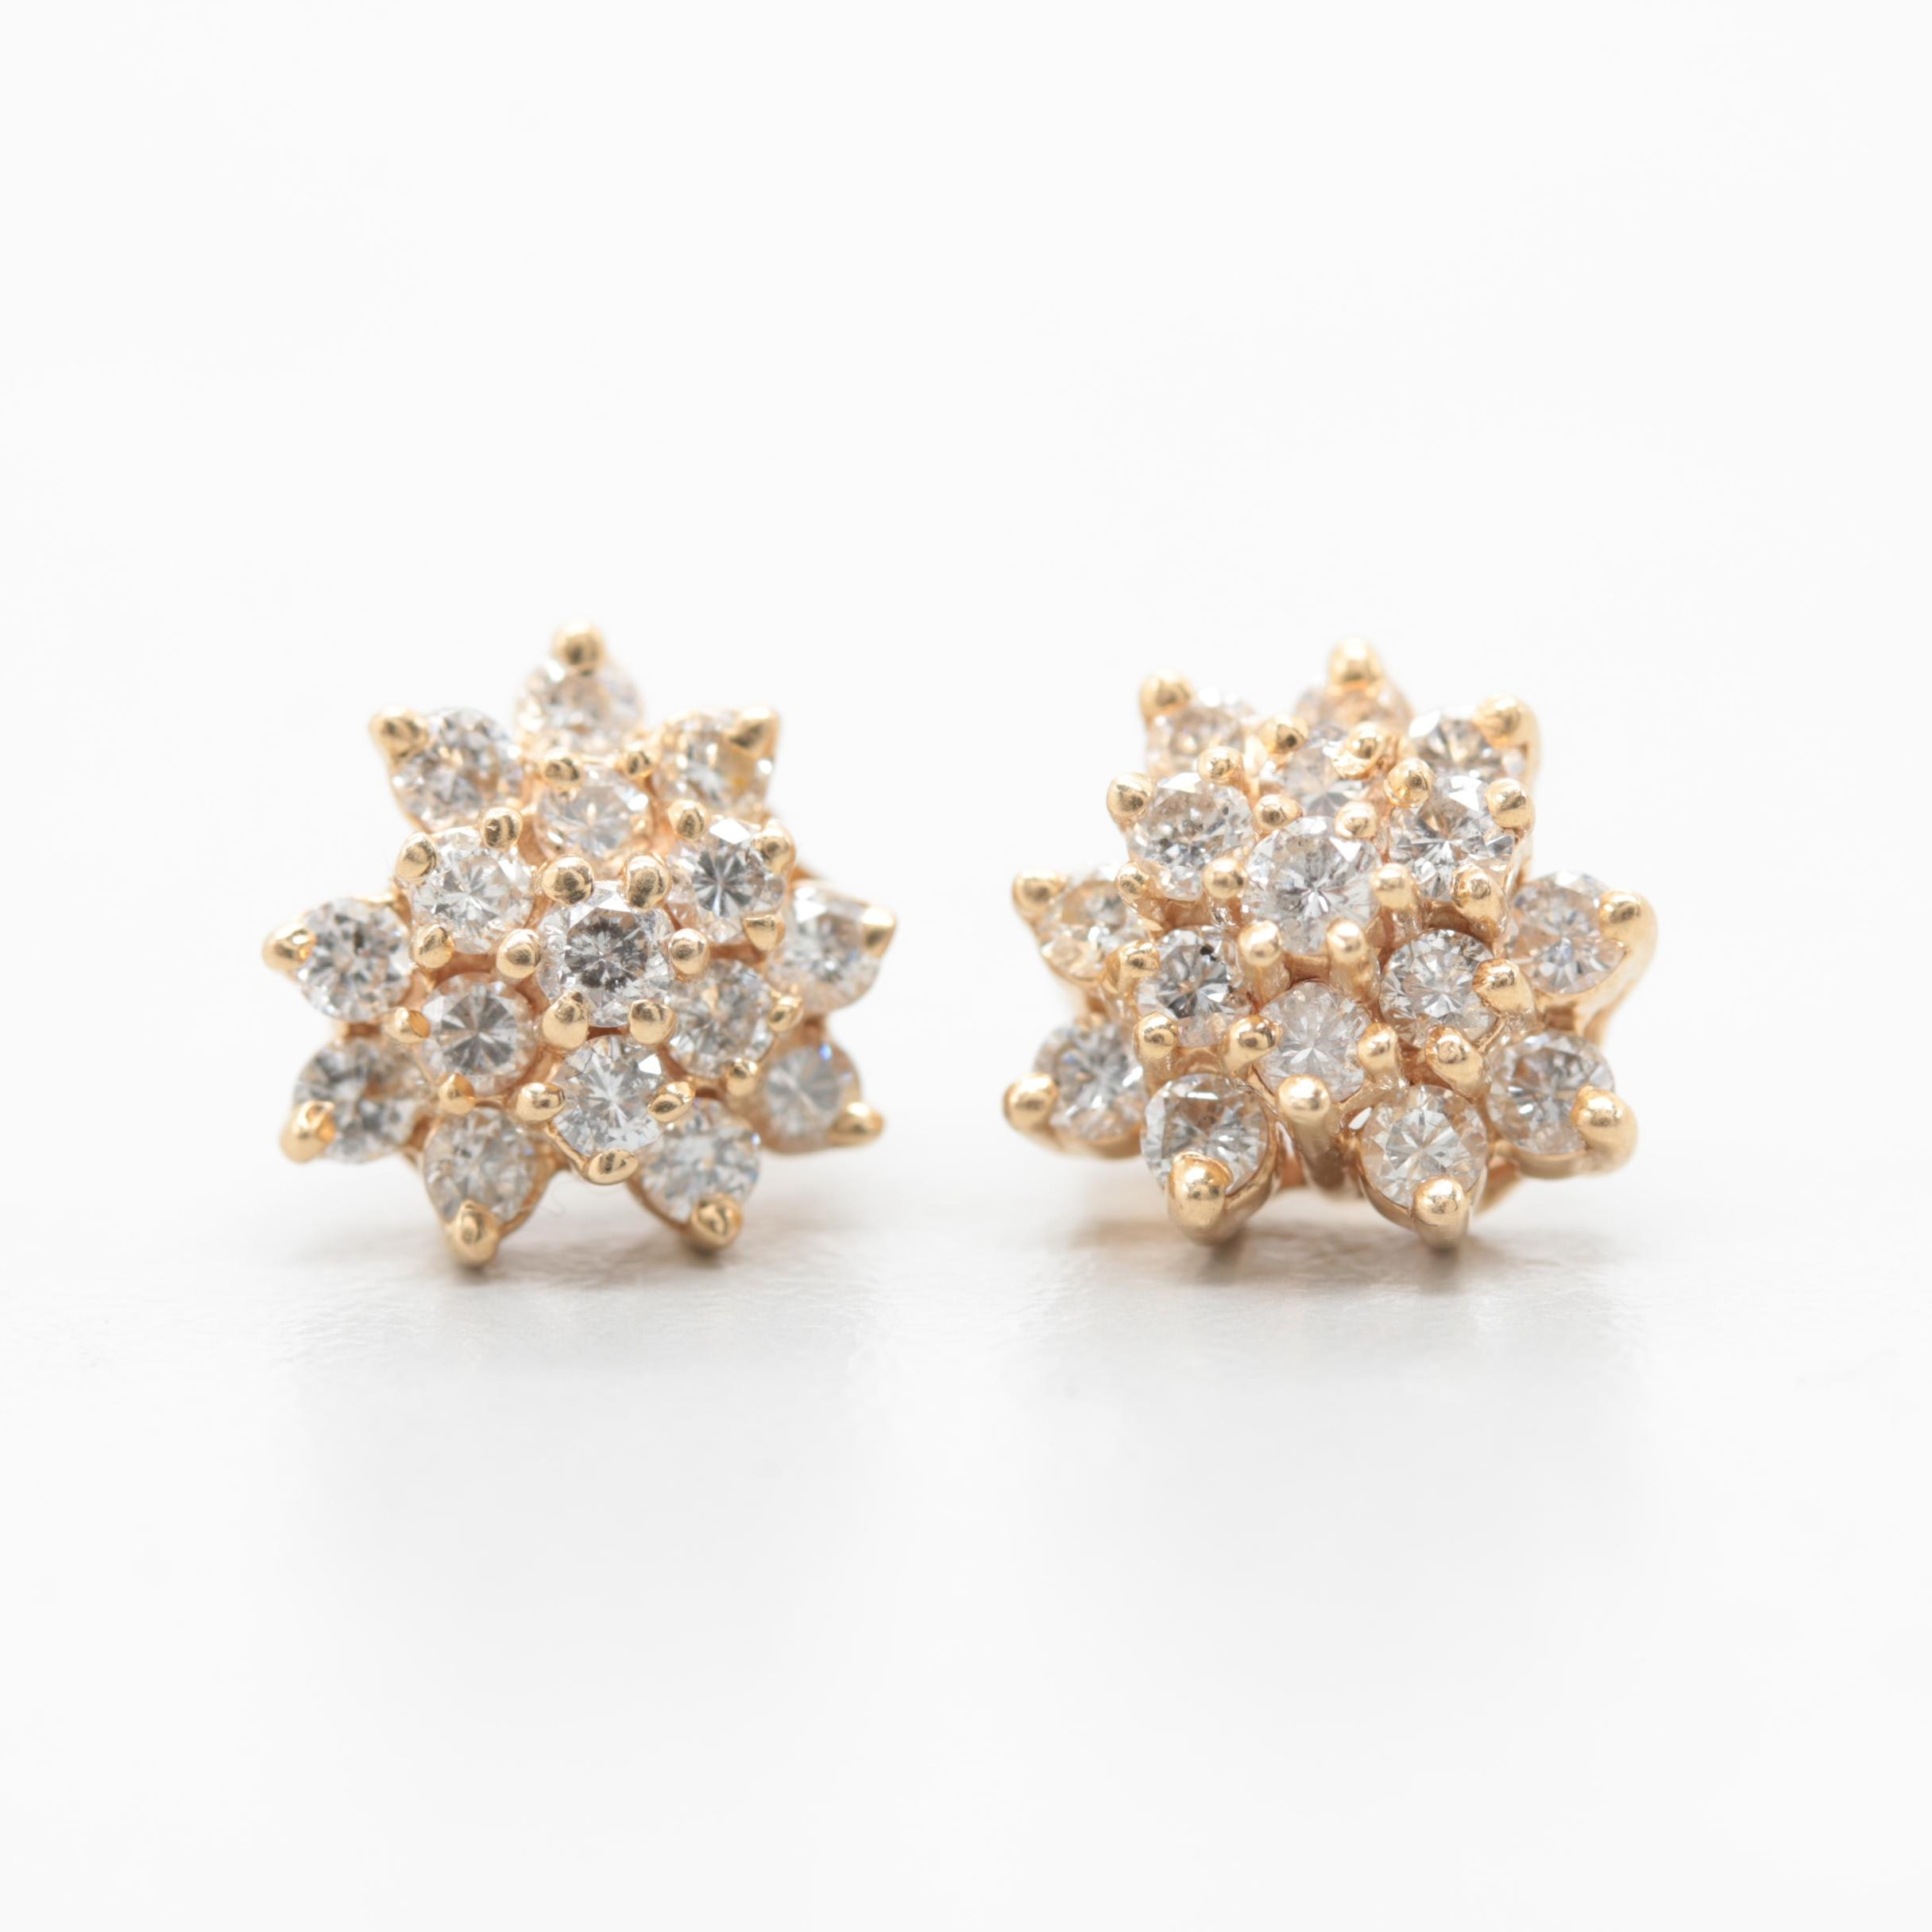 14K Yellow Gold 0.96 CTW Diamond Stud Earrings